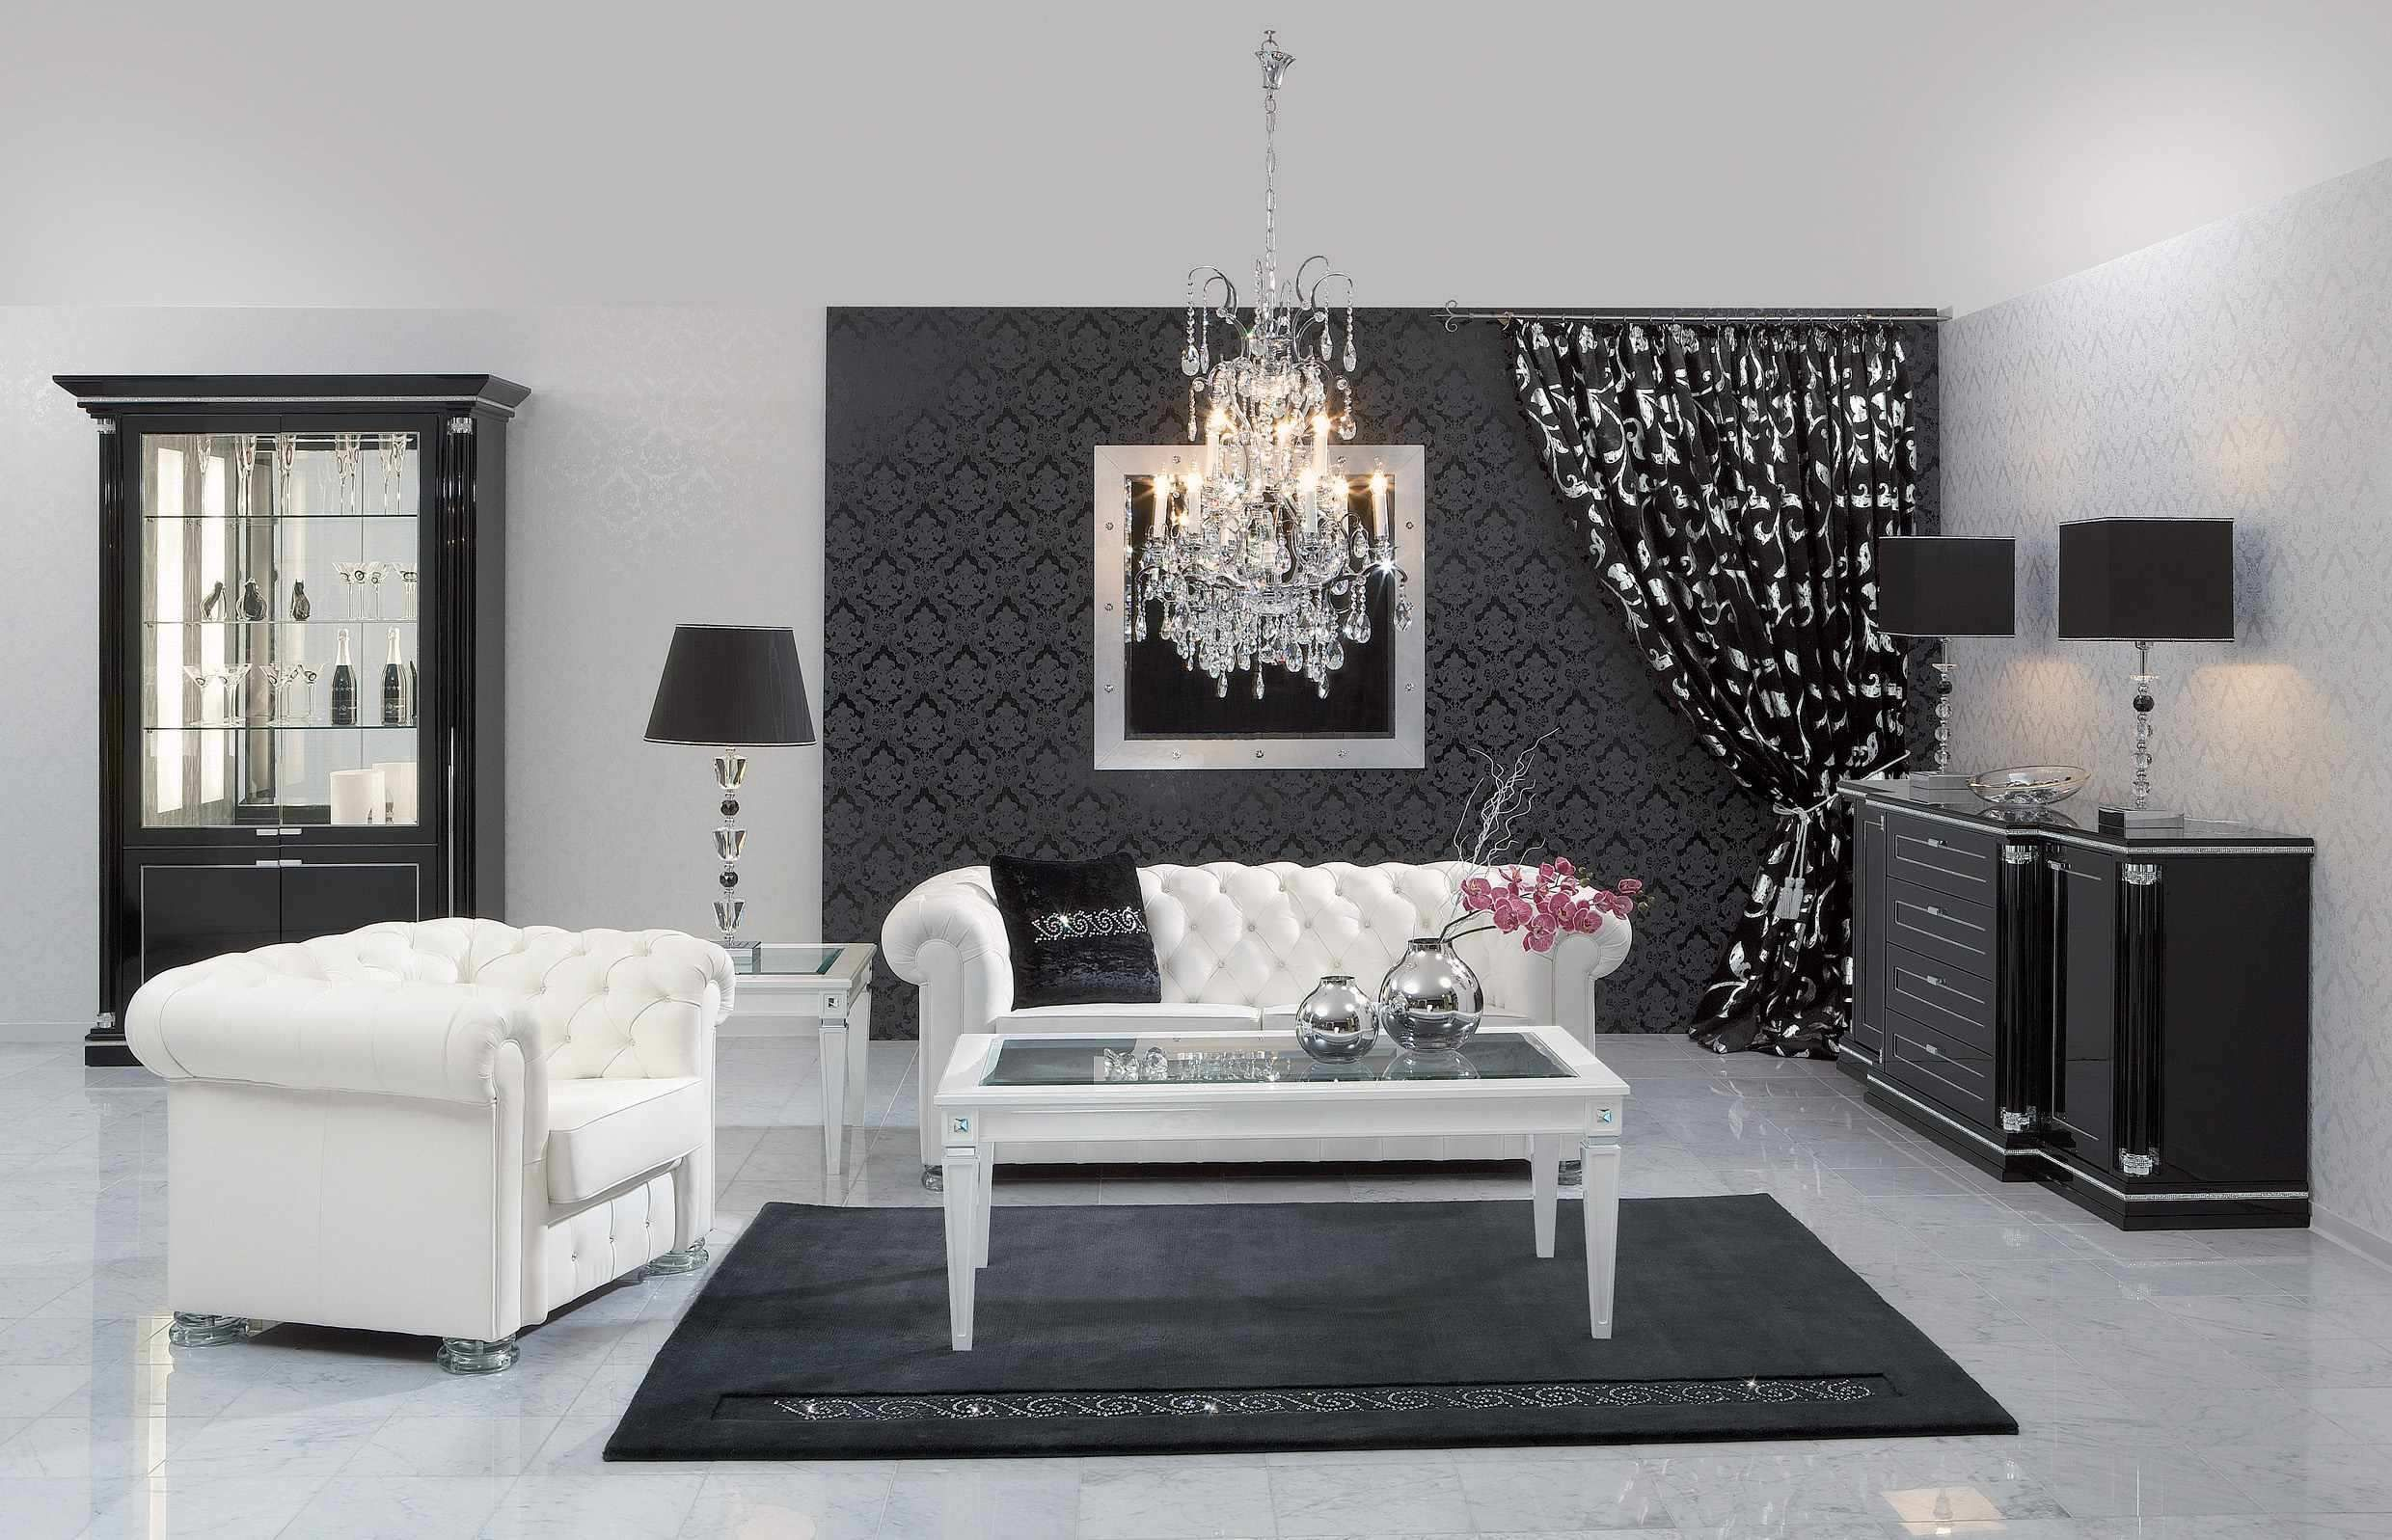 5 outdated home decor trends that are coming again in 2018 black living roomsluxury living roomswhite - Black White And Silver Bedroom Ideas